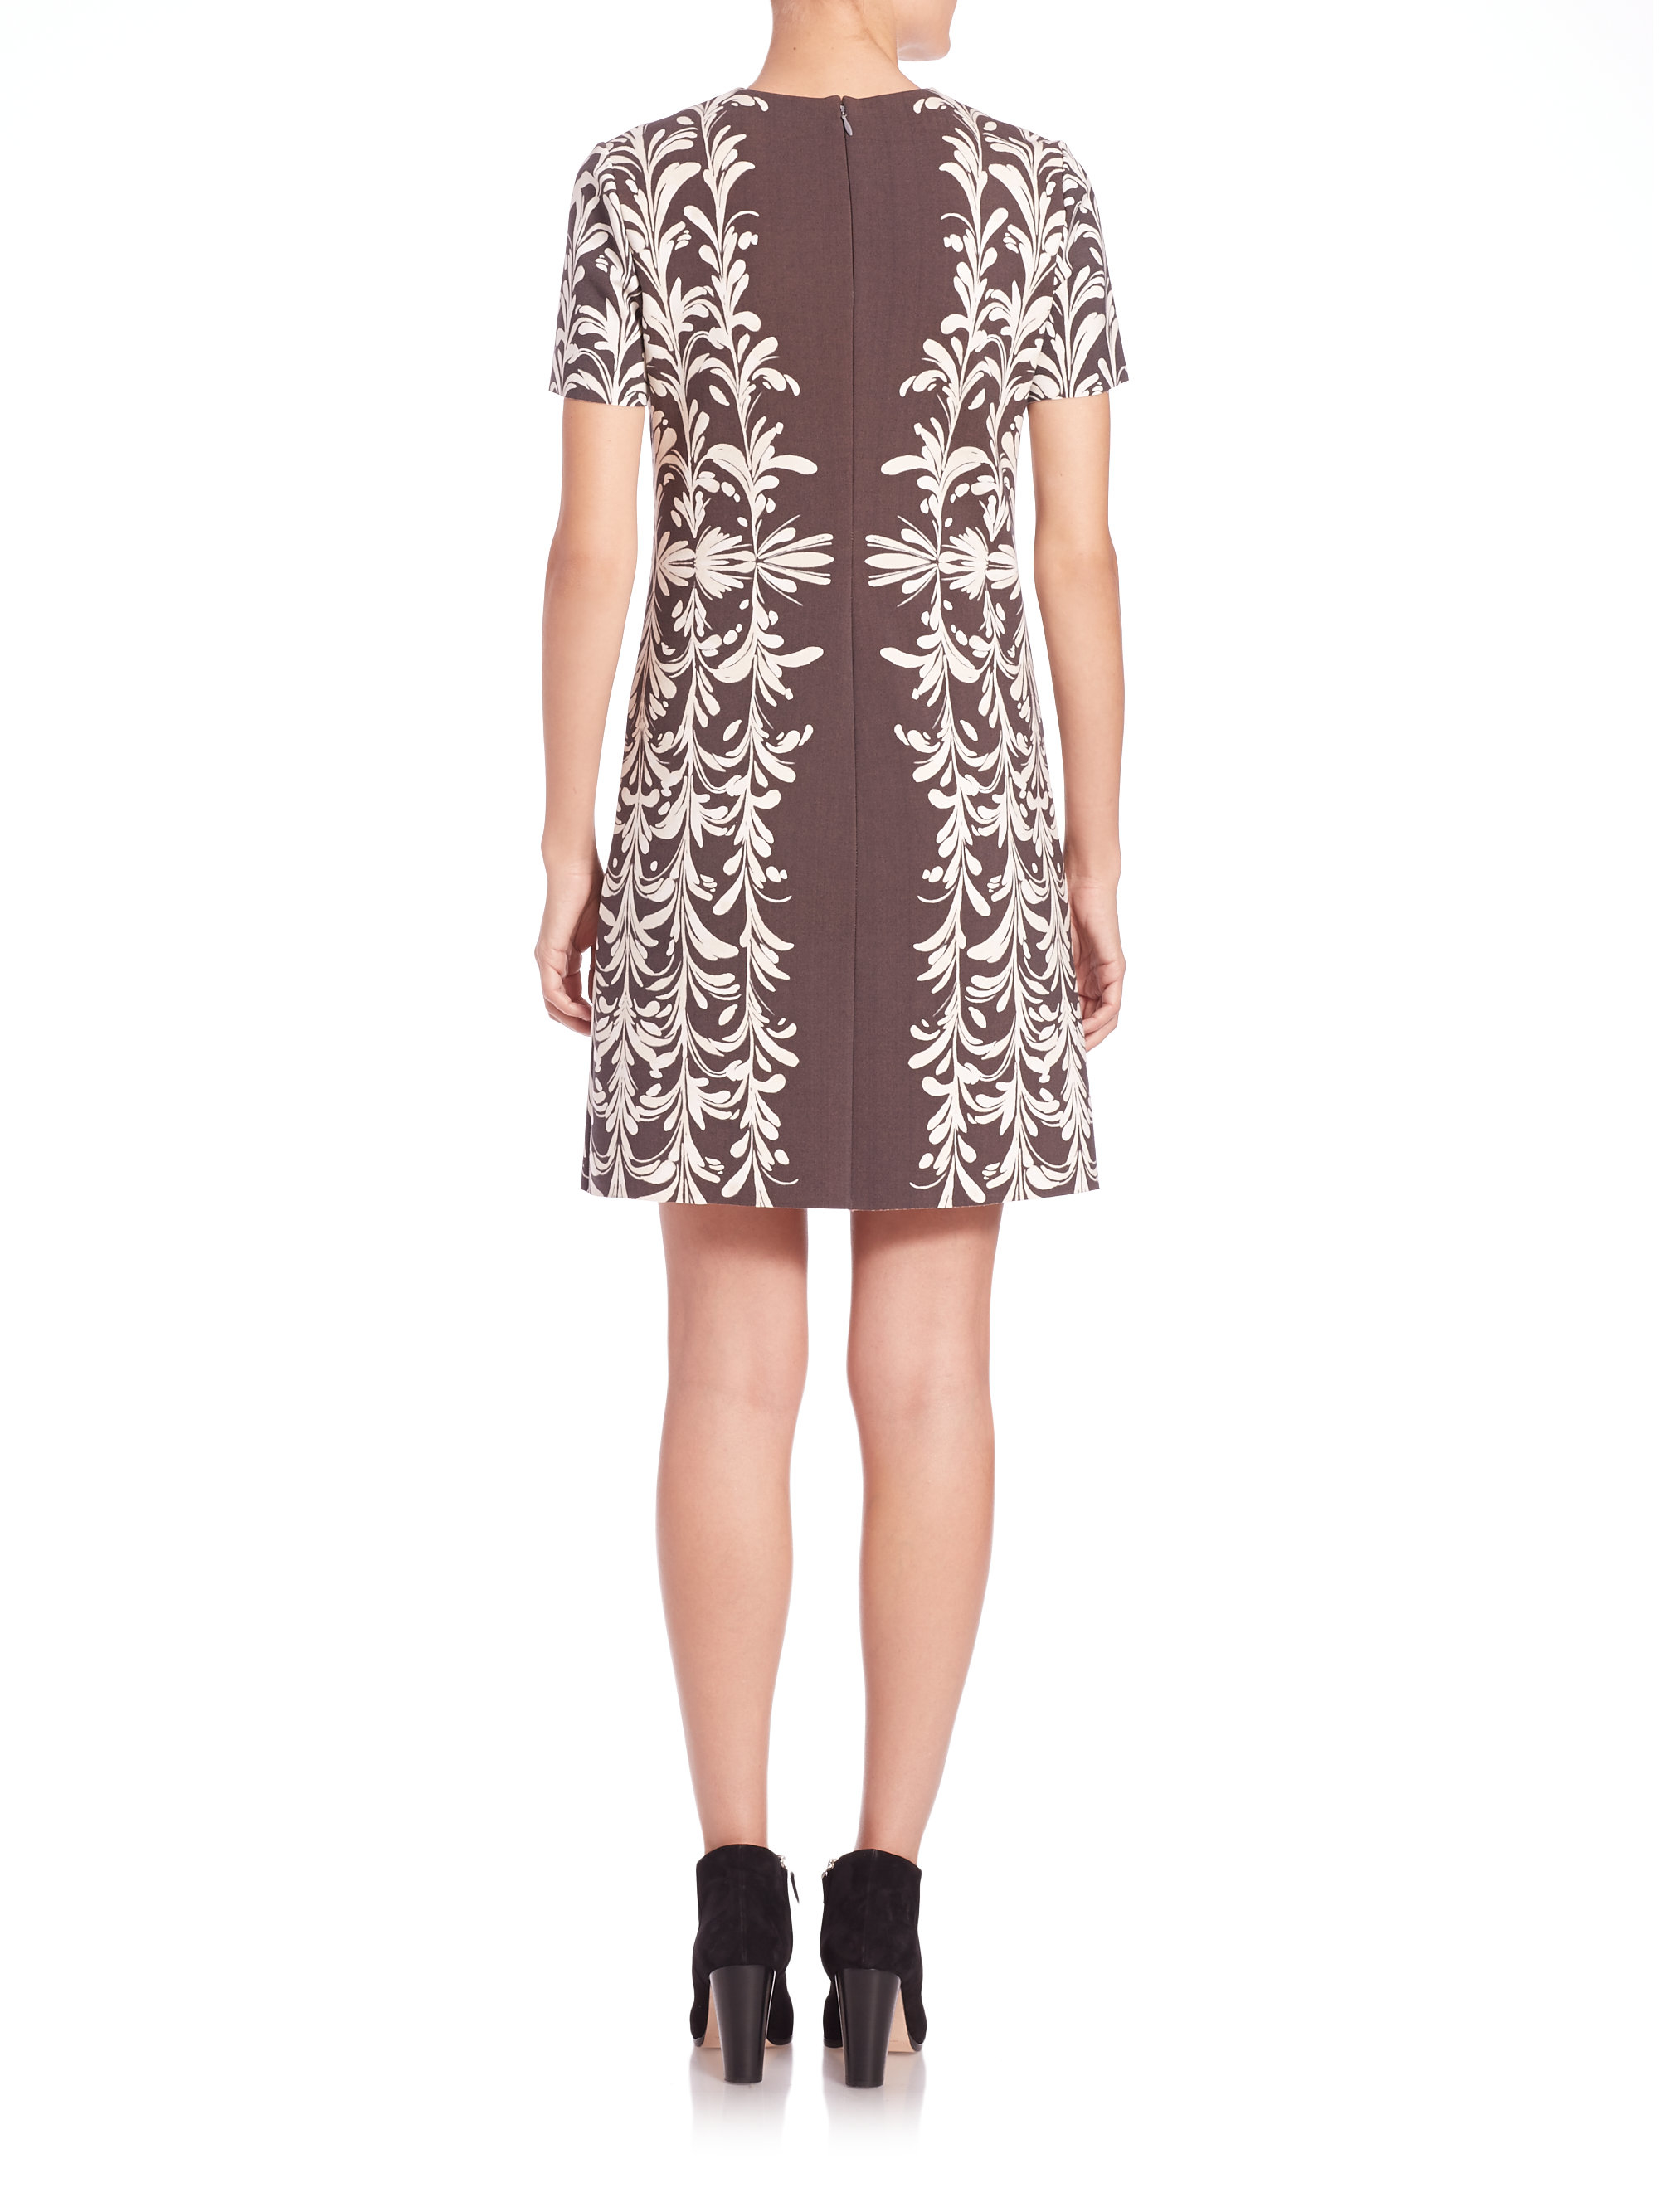 Il Ponte Wallet Tory Burch Floral Print Ponte Dress In Gray Lyst